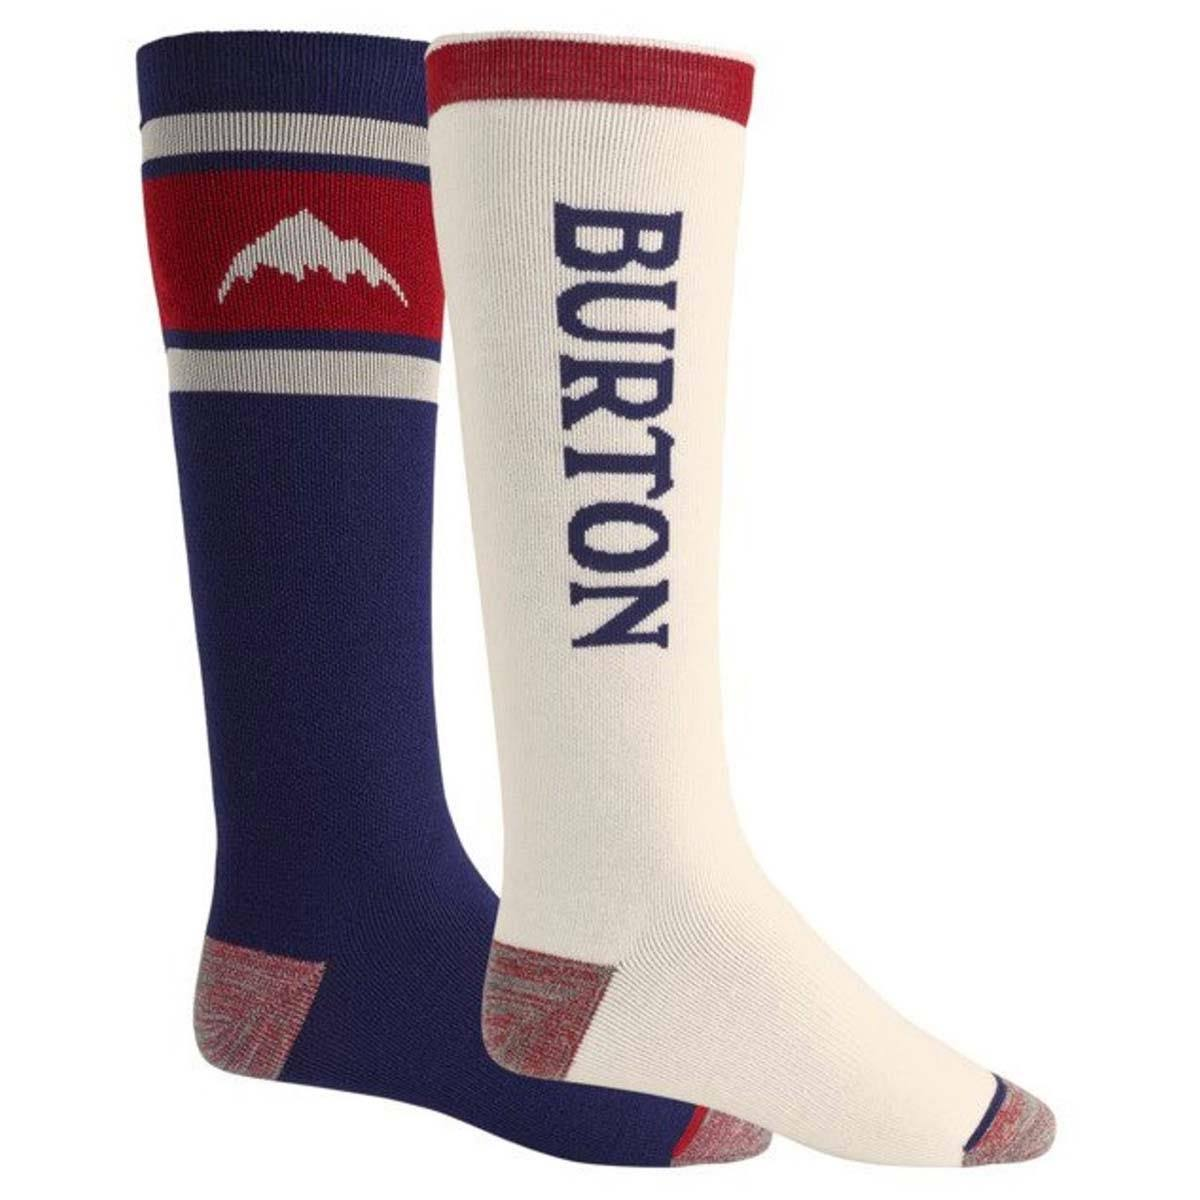 Burton Men's Weekend Midweight Socks 2 Pack